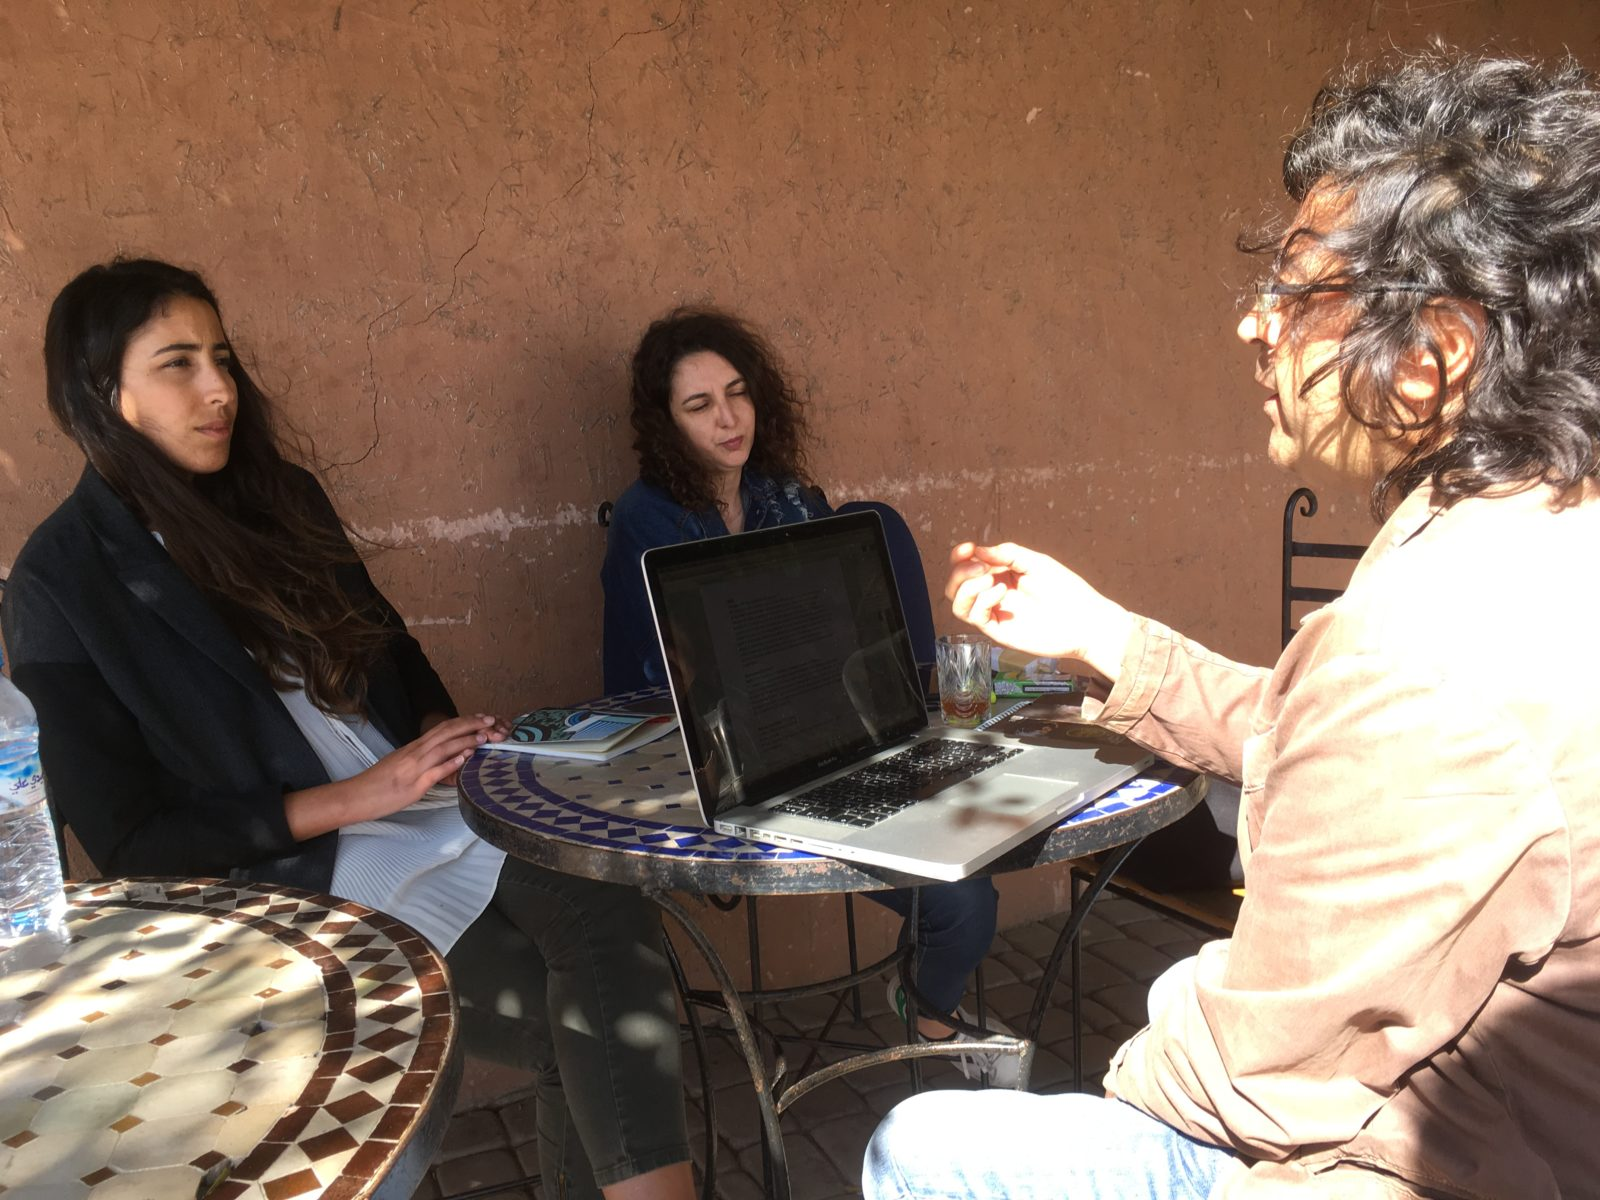 Sonia Terrab and Fatim Bencherki (MAROKKIAT) talking with Ali Assafi